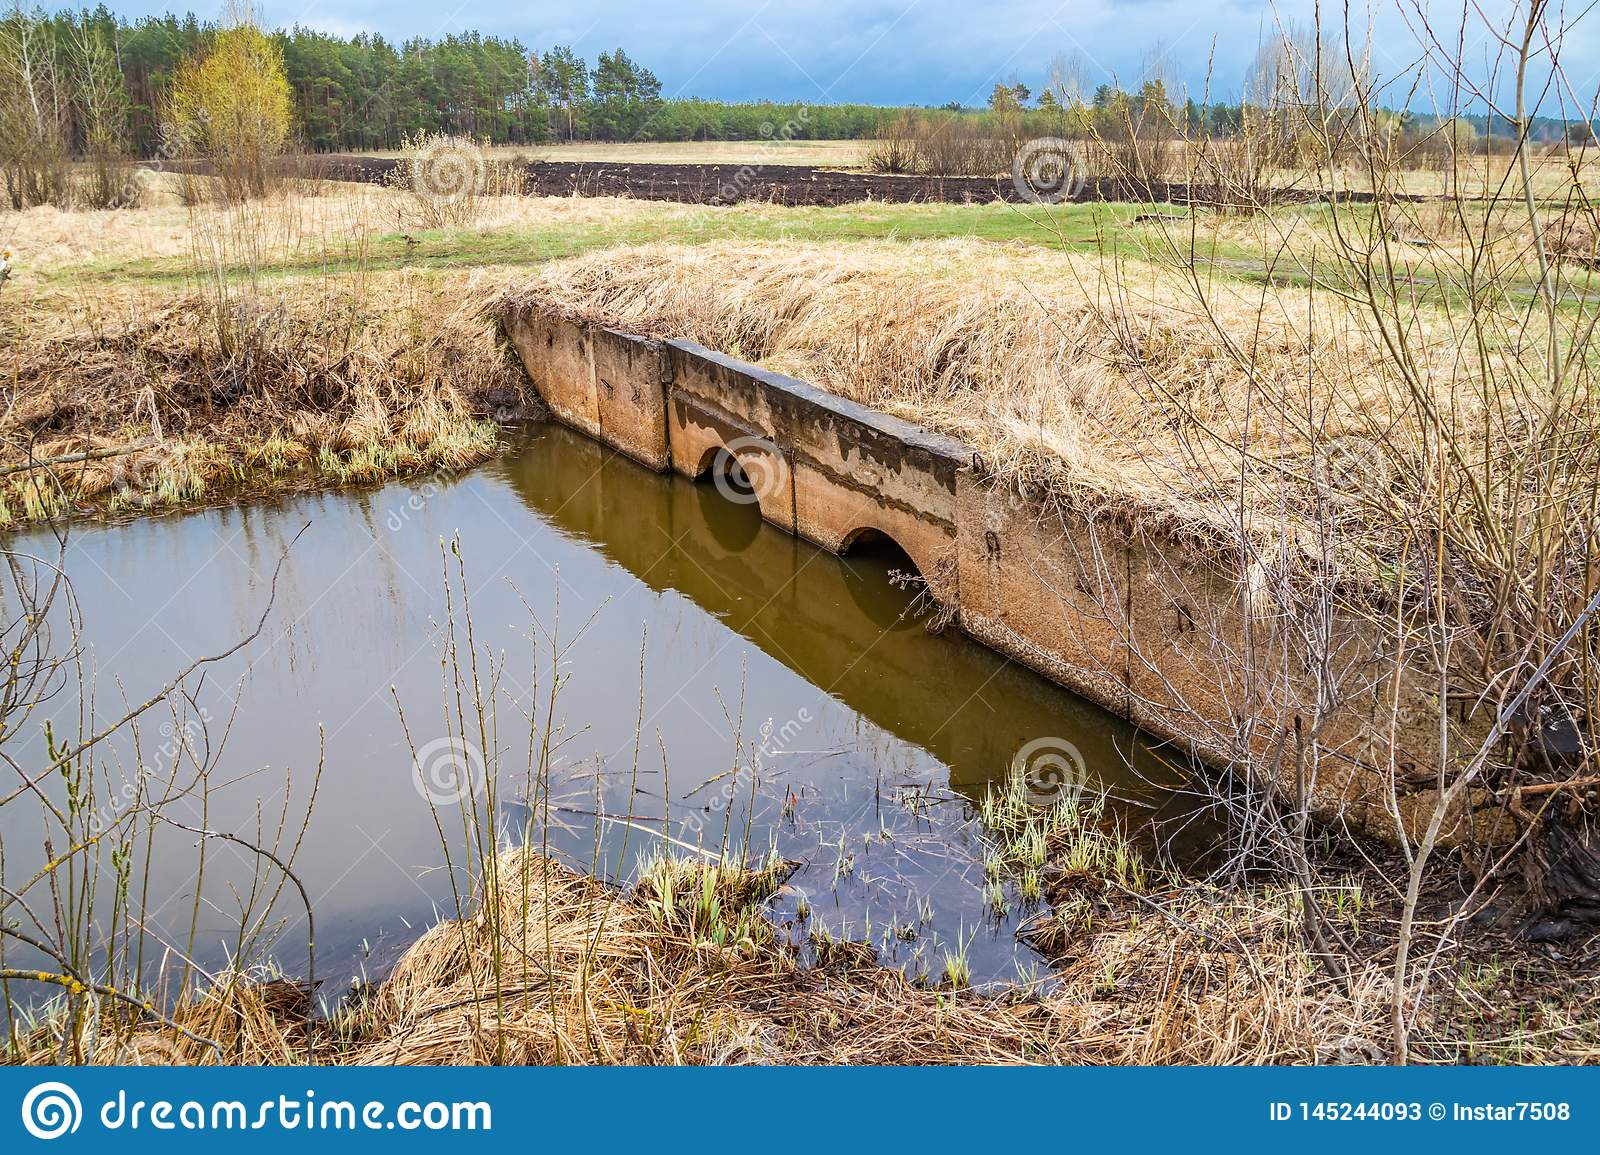 Land reclamation system for irrigation of fields